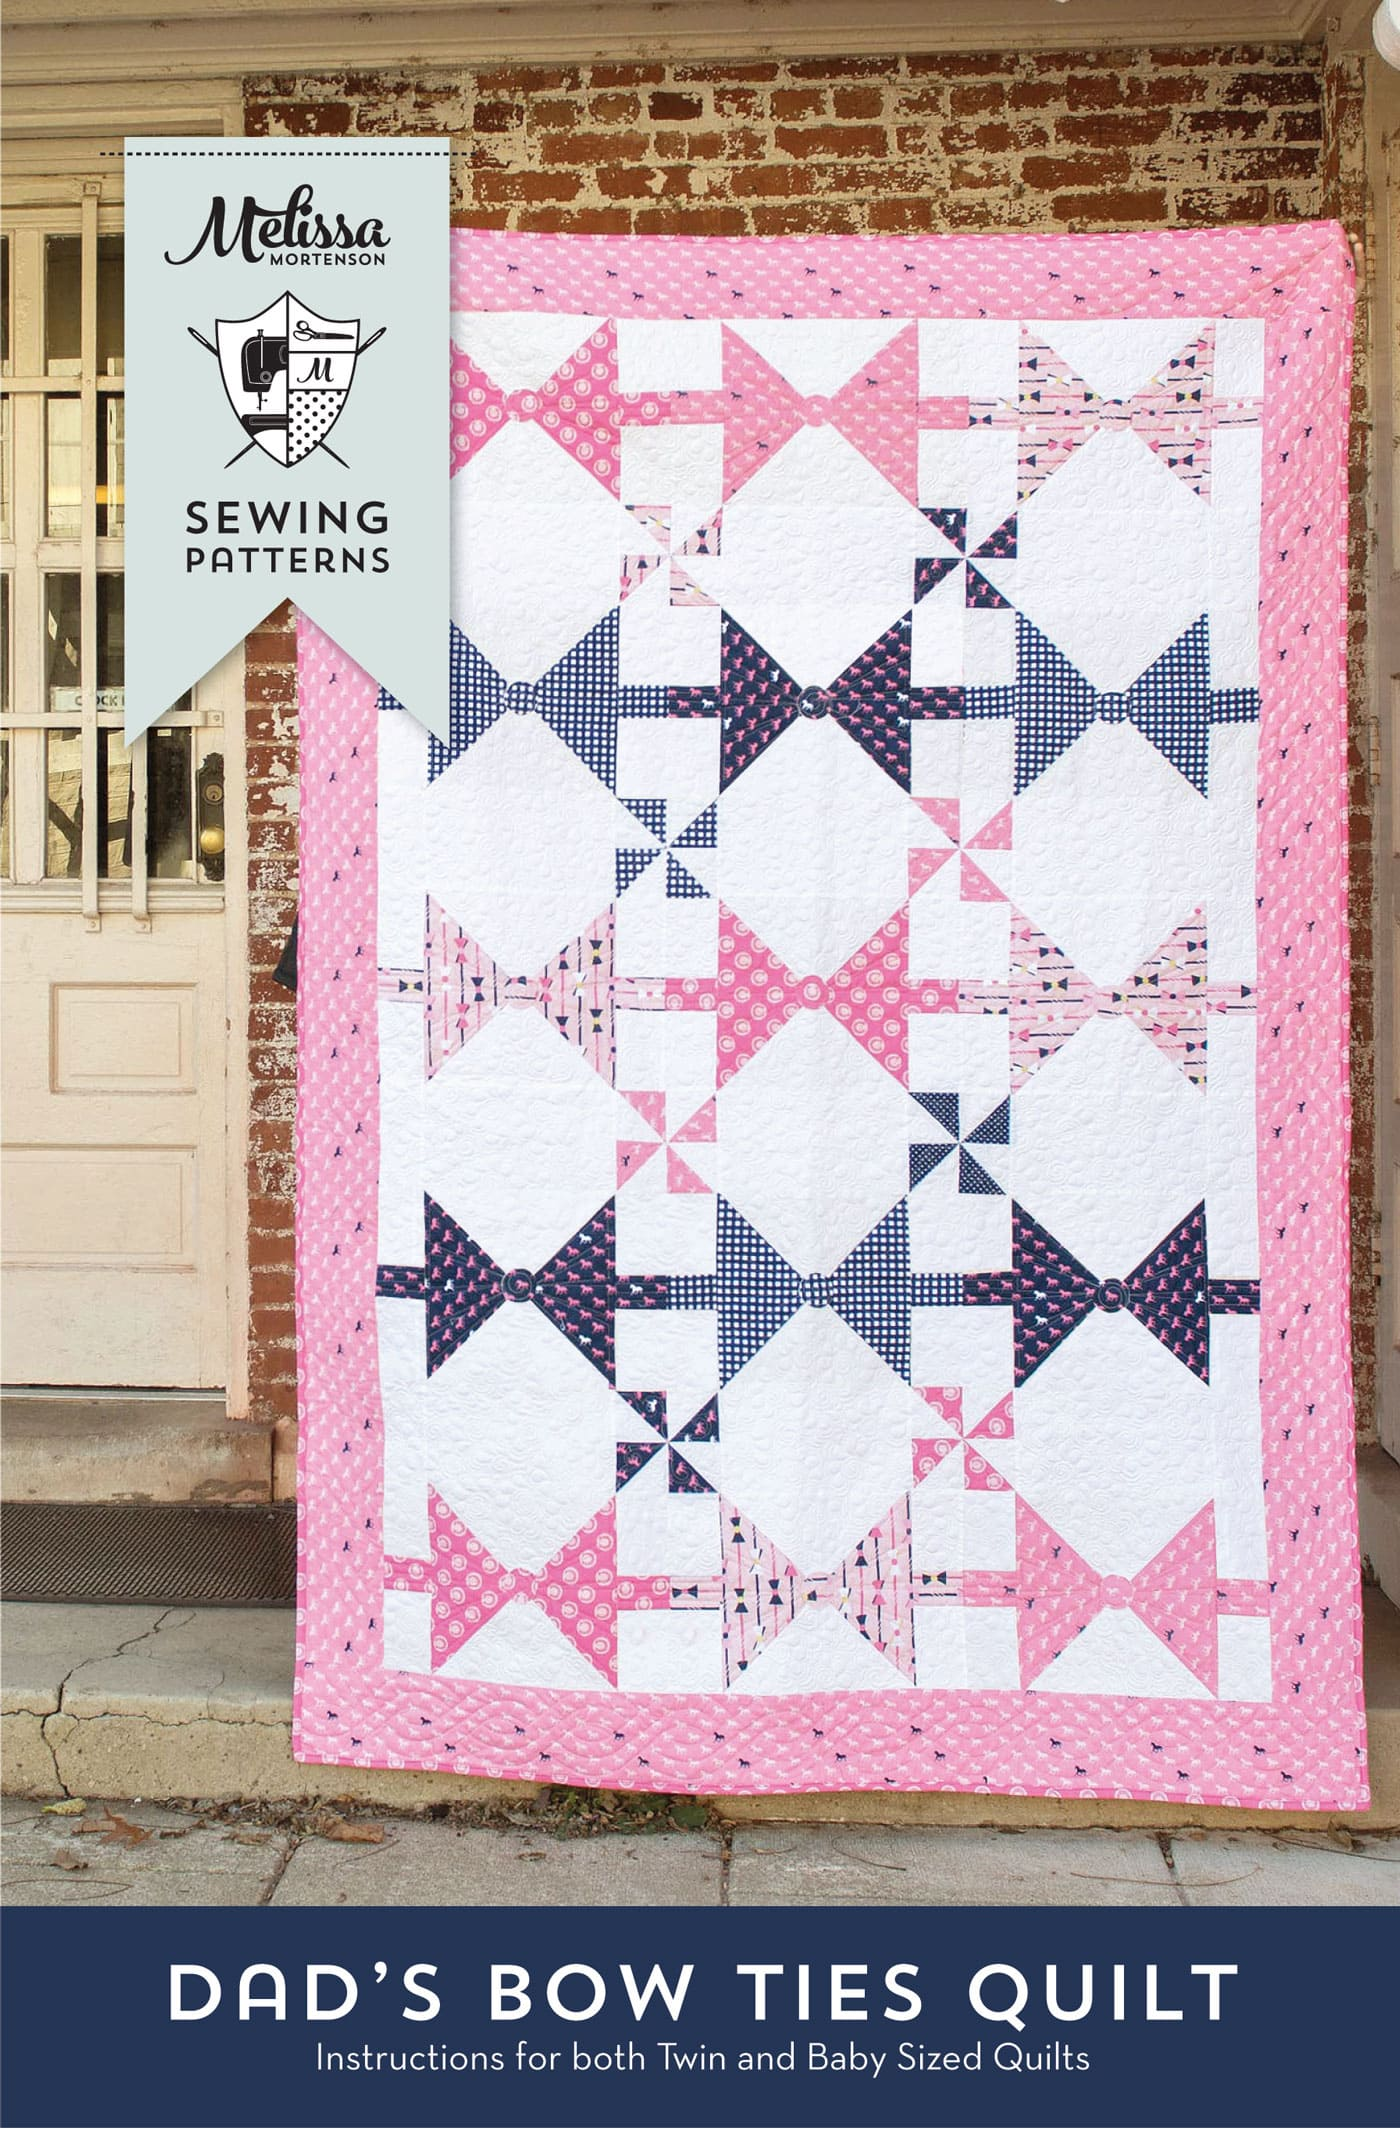 Baby bed quilt size - Size Of Baby Quilt Progizn Info